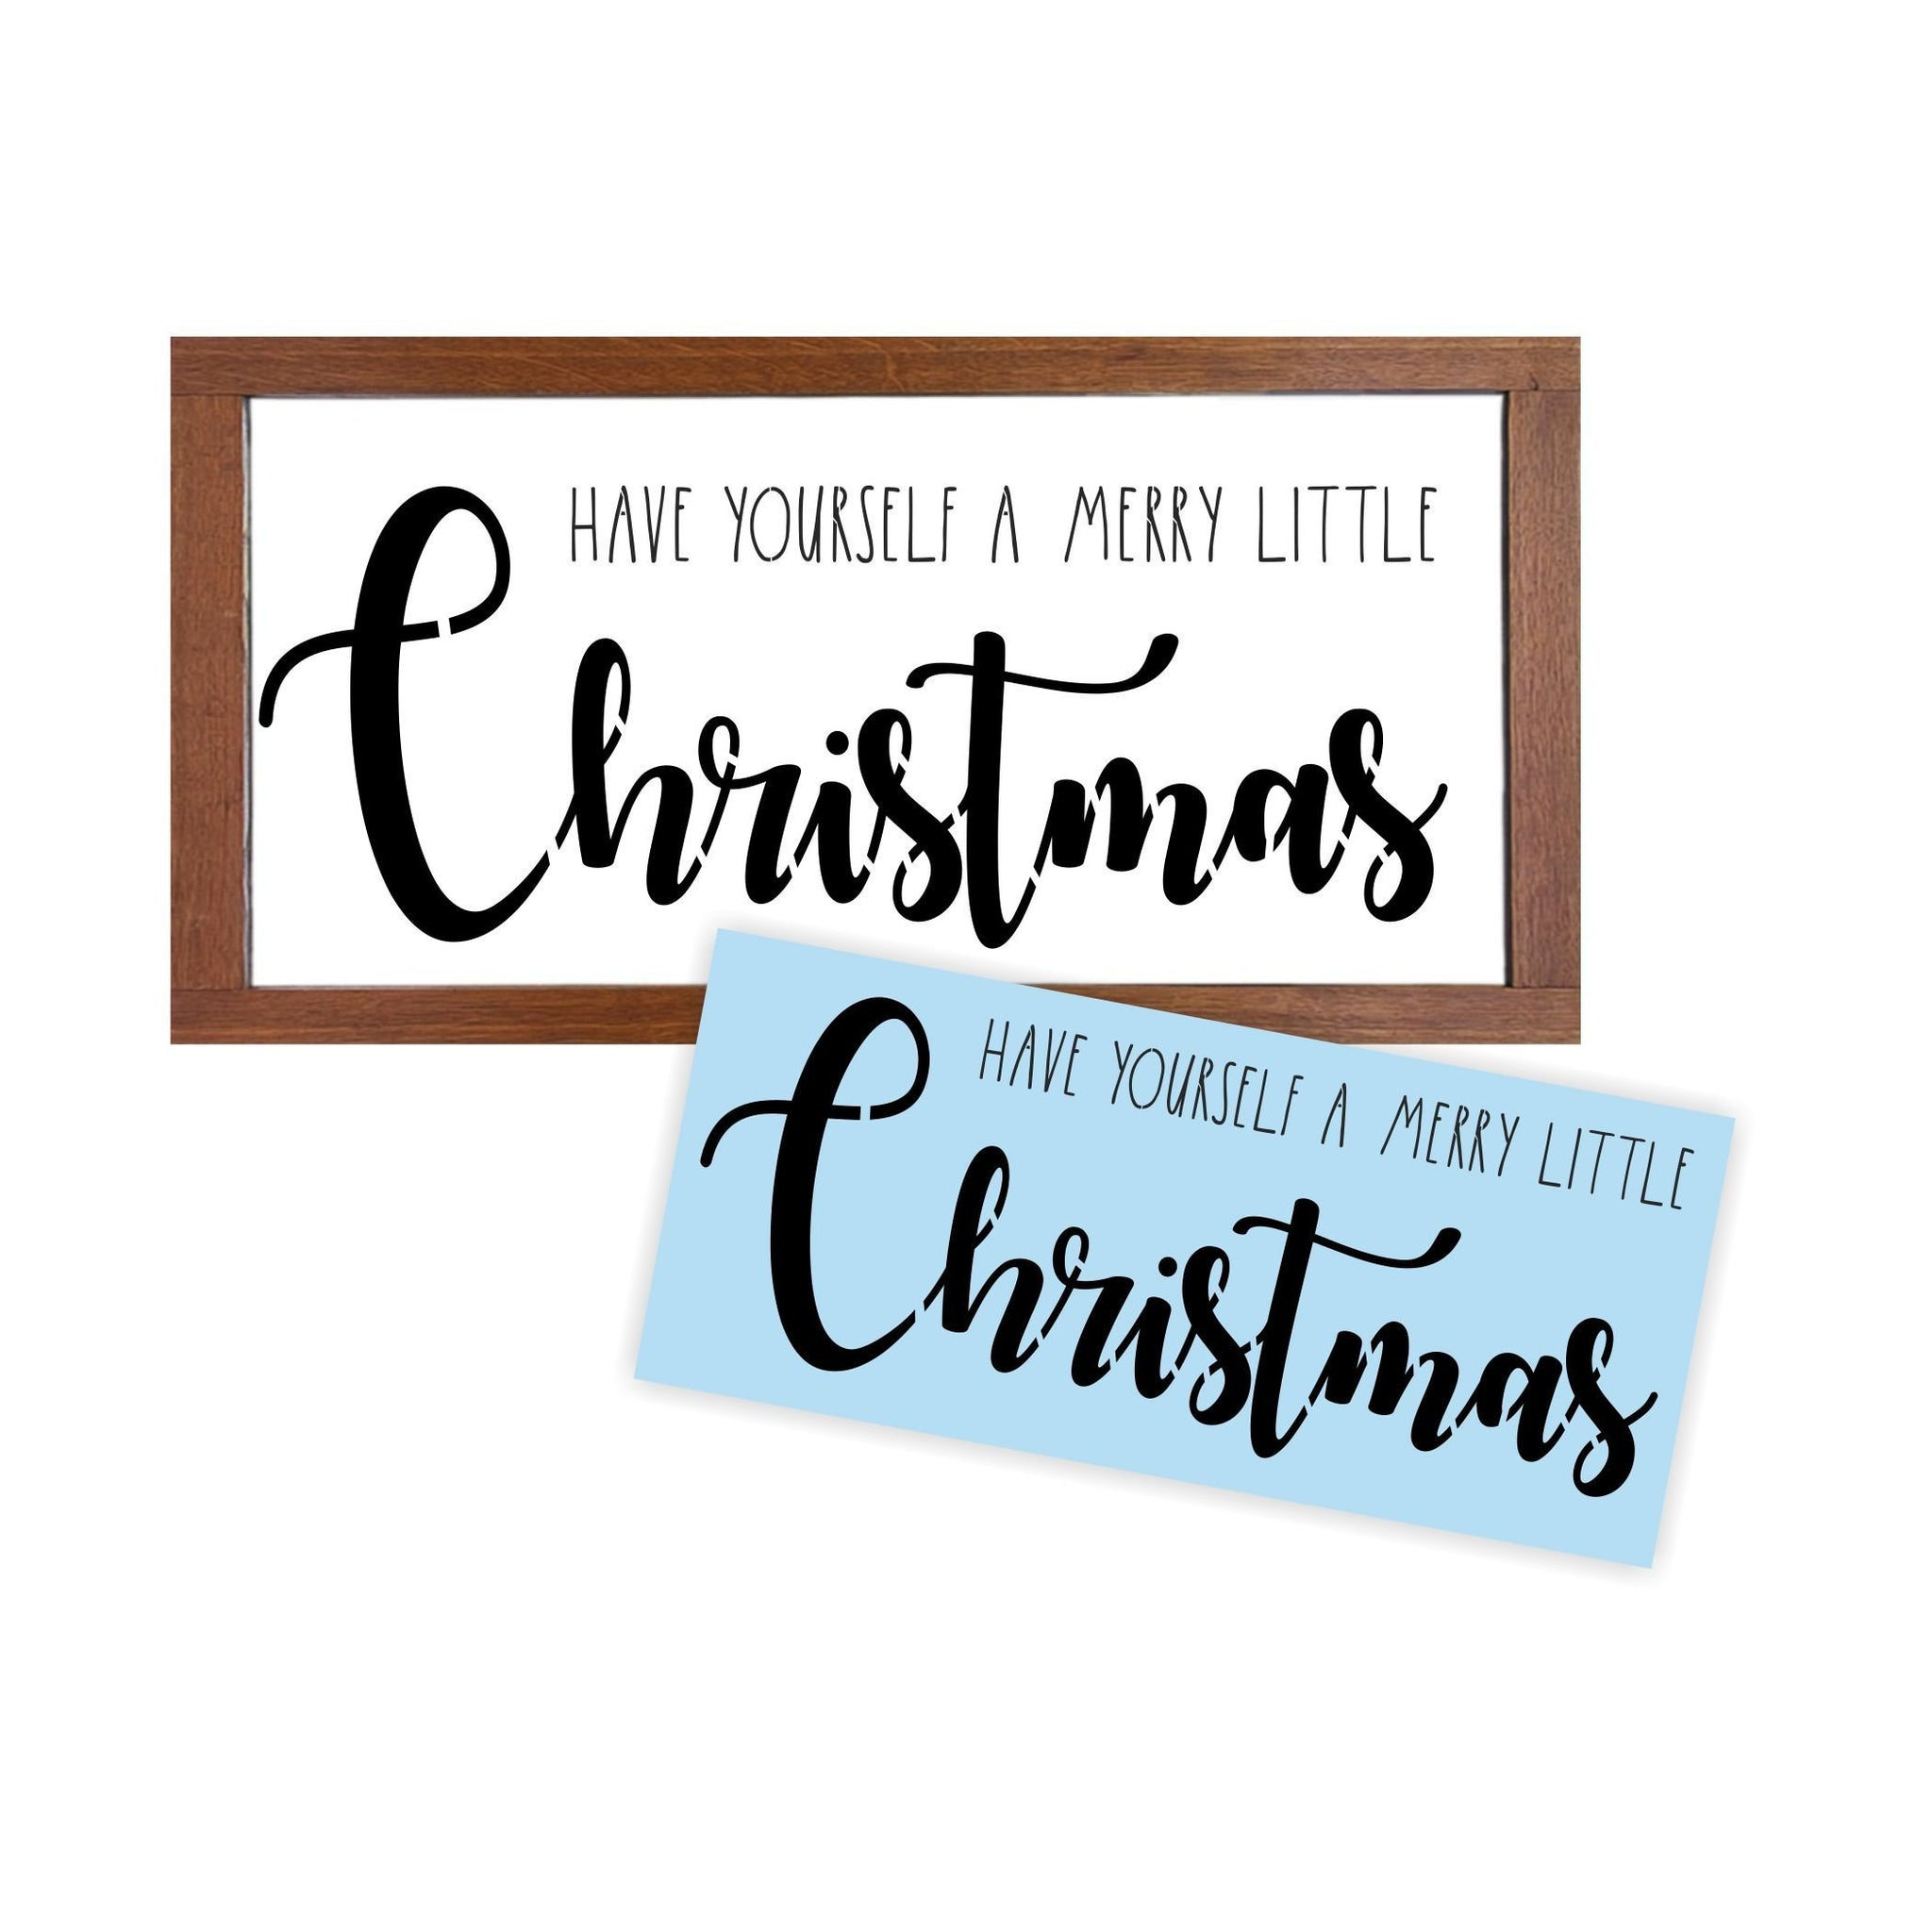 Have Yourself A Merry Little Christmas Stencil - Paint Your Own Wood Sign - Reusable Plastic Stencil